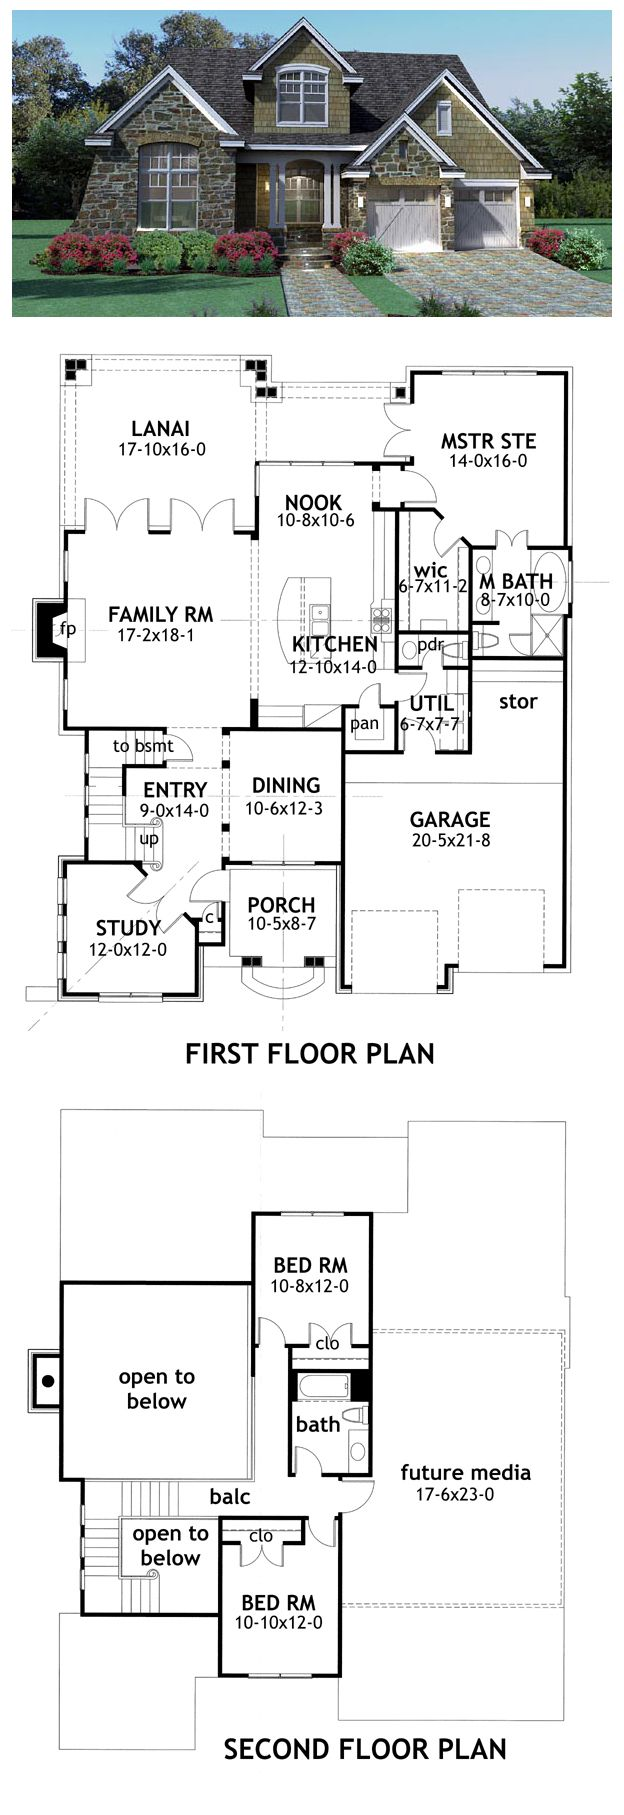 best 25 2 bedroom house plans ideas that you will like on best 25 2 bedroom house plans ideas that you will like on pinterest small house floor plans 3d house plans and sims house